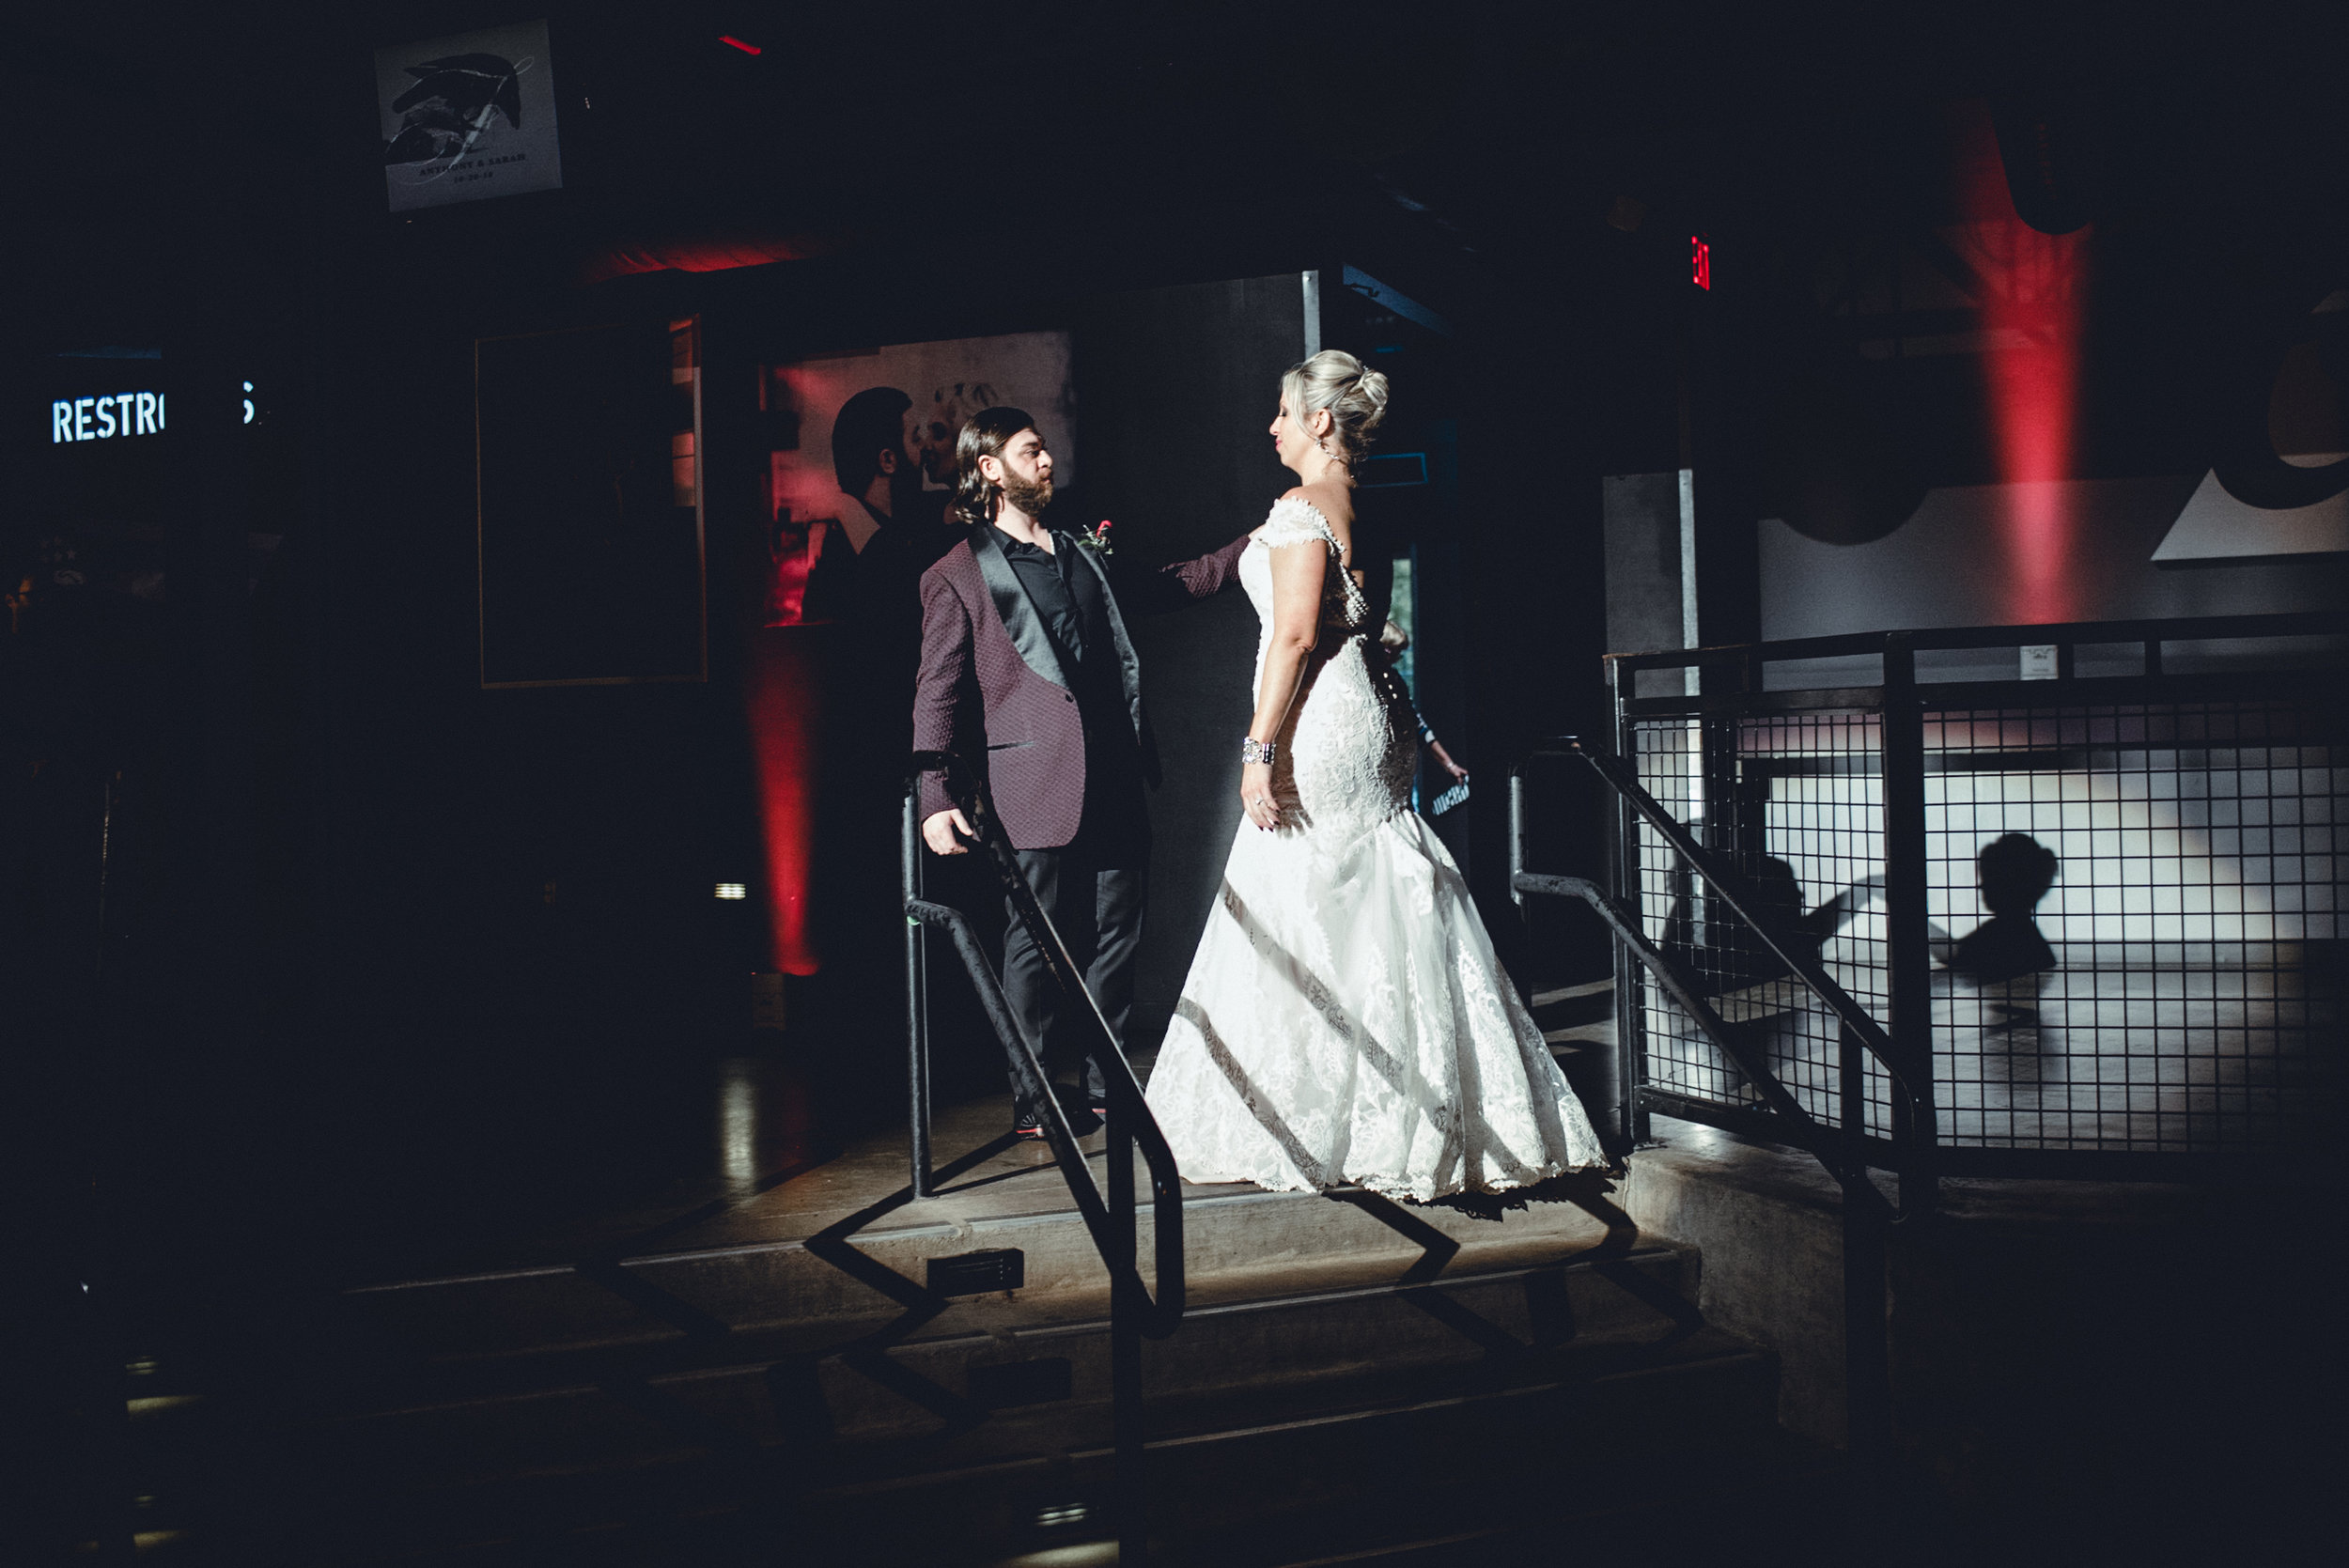 Pittsburgh Wedding Photographer - Requiem Images - Stage AE - Rock n Roll 1543.jpg